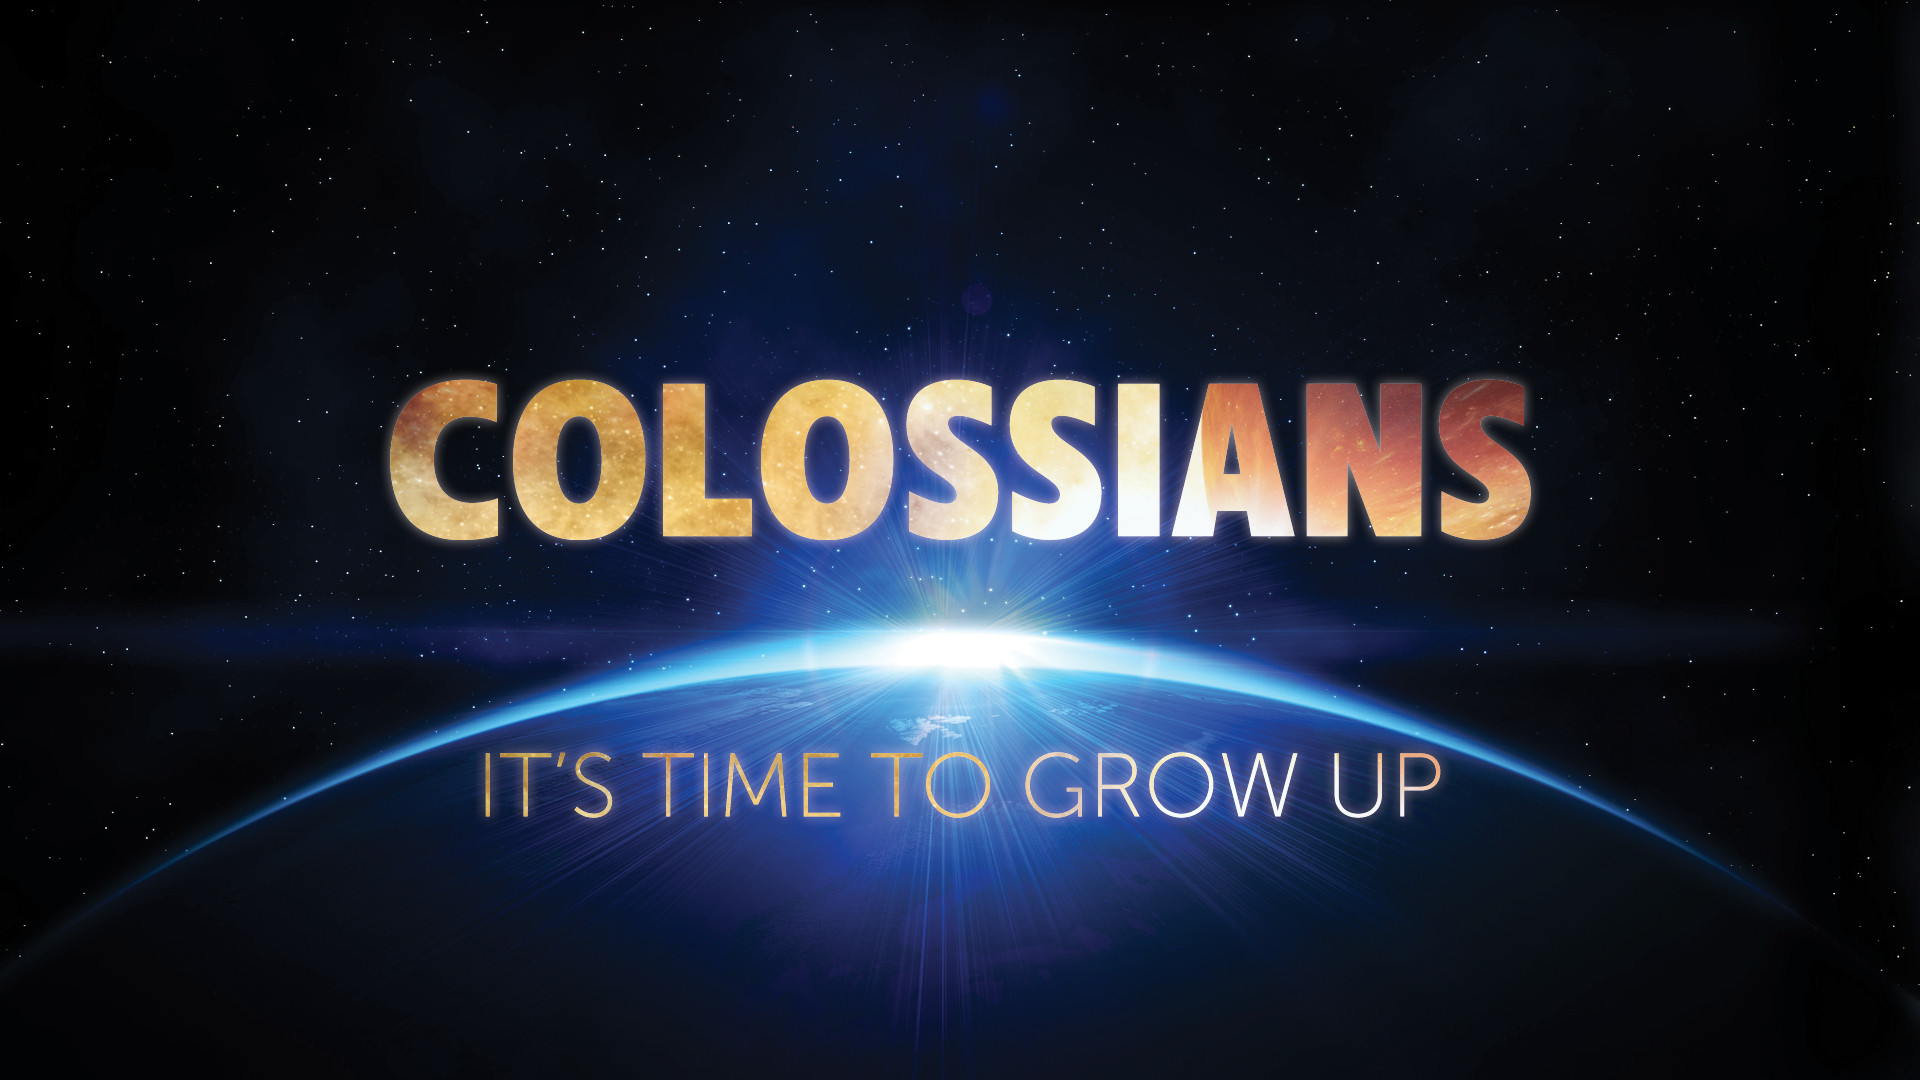 Colossians - It's Time to Grow Up_72.jpg